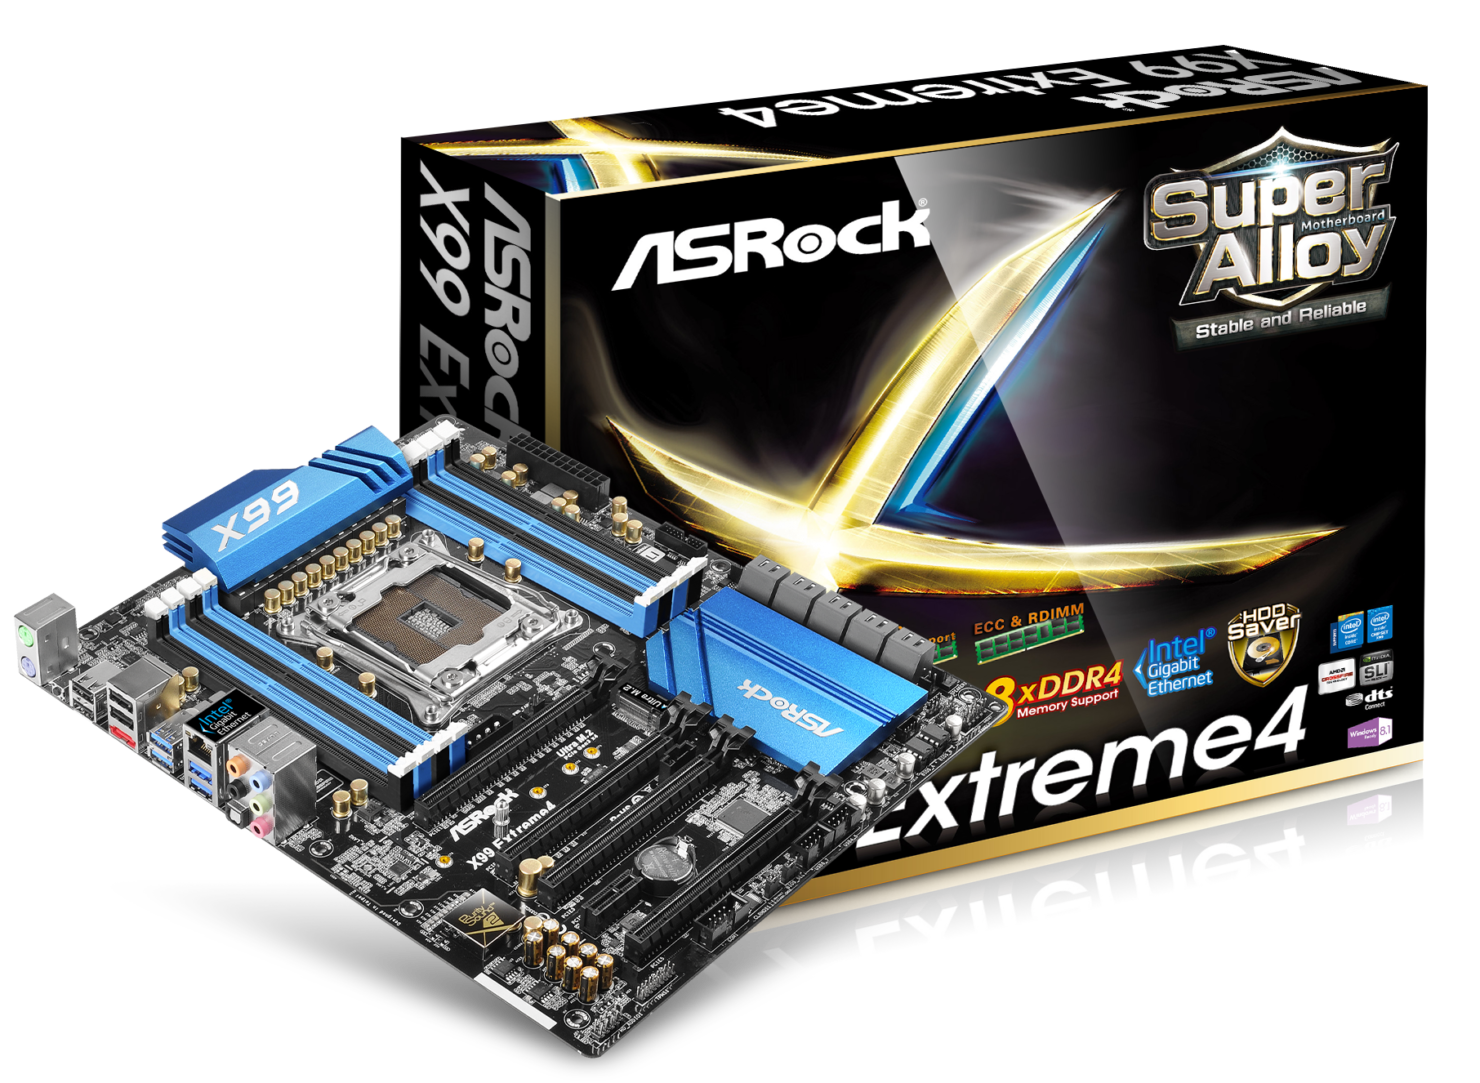 asrock-x99-extreme-4-motherboard-3